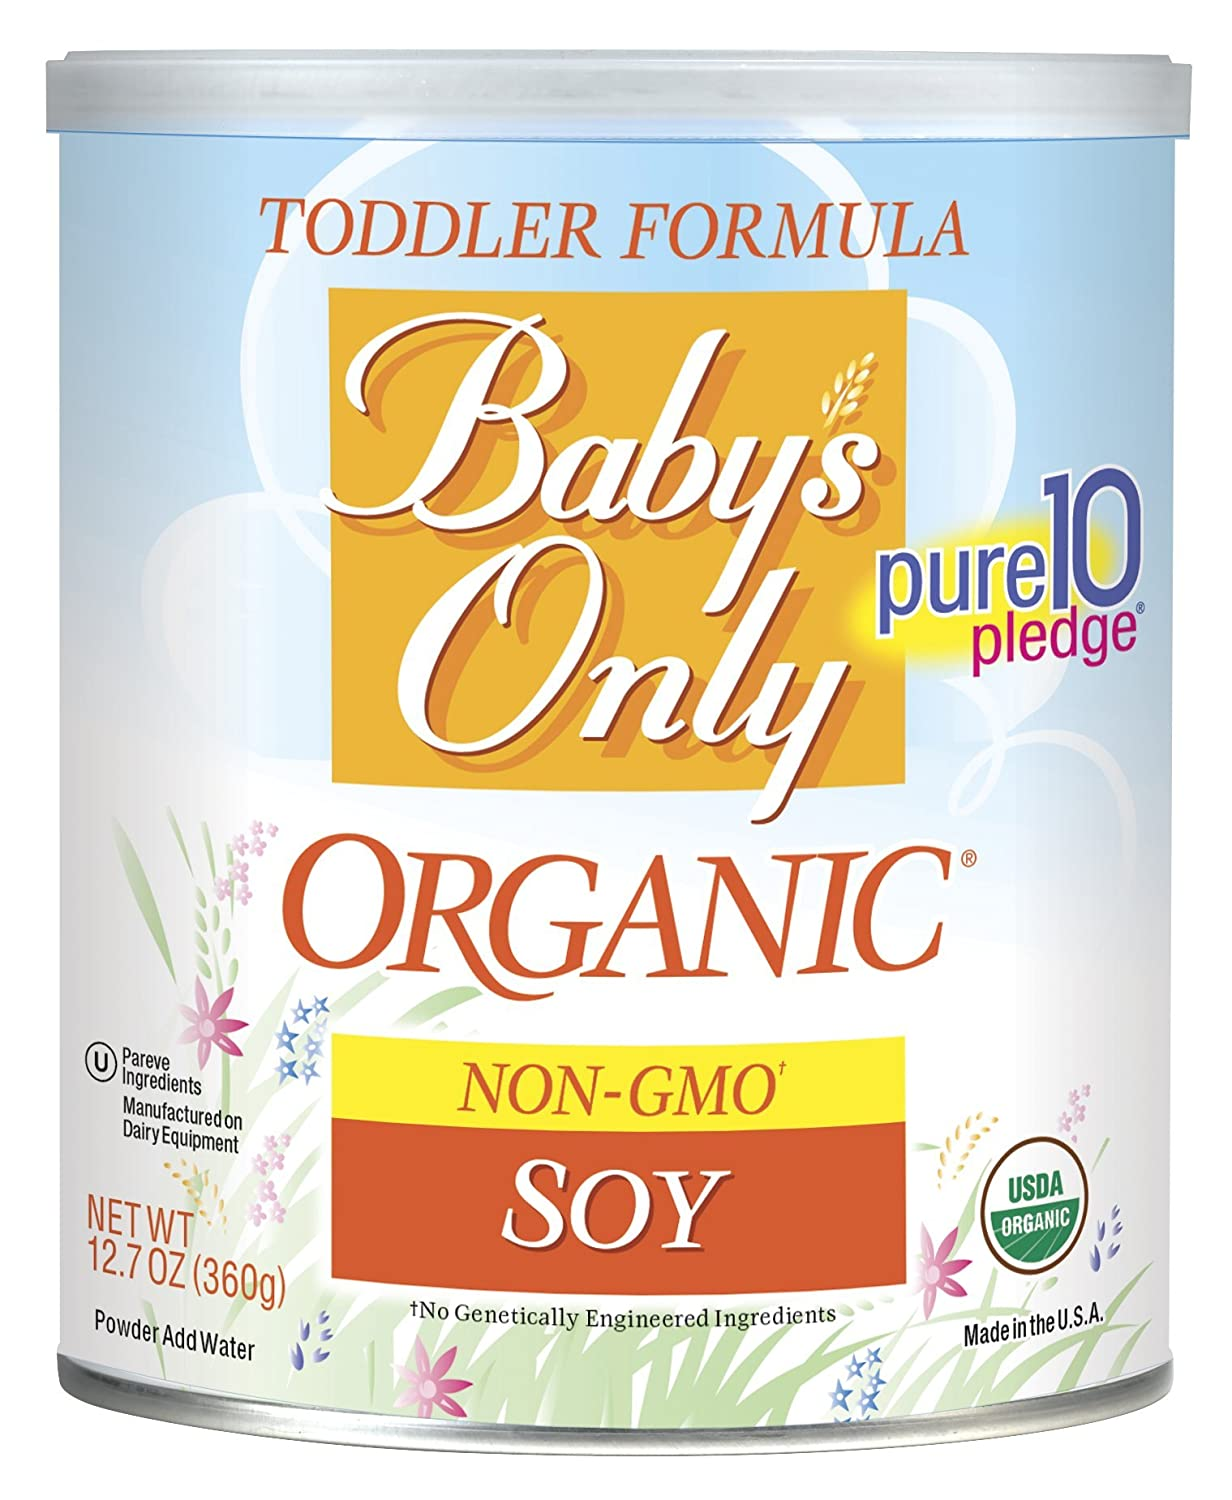 Babys Only Soy Organic Toddler Formula, 12.7-Ounce Canister (Package May Vary) Baby' s Only 101873